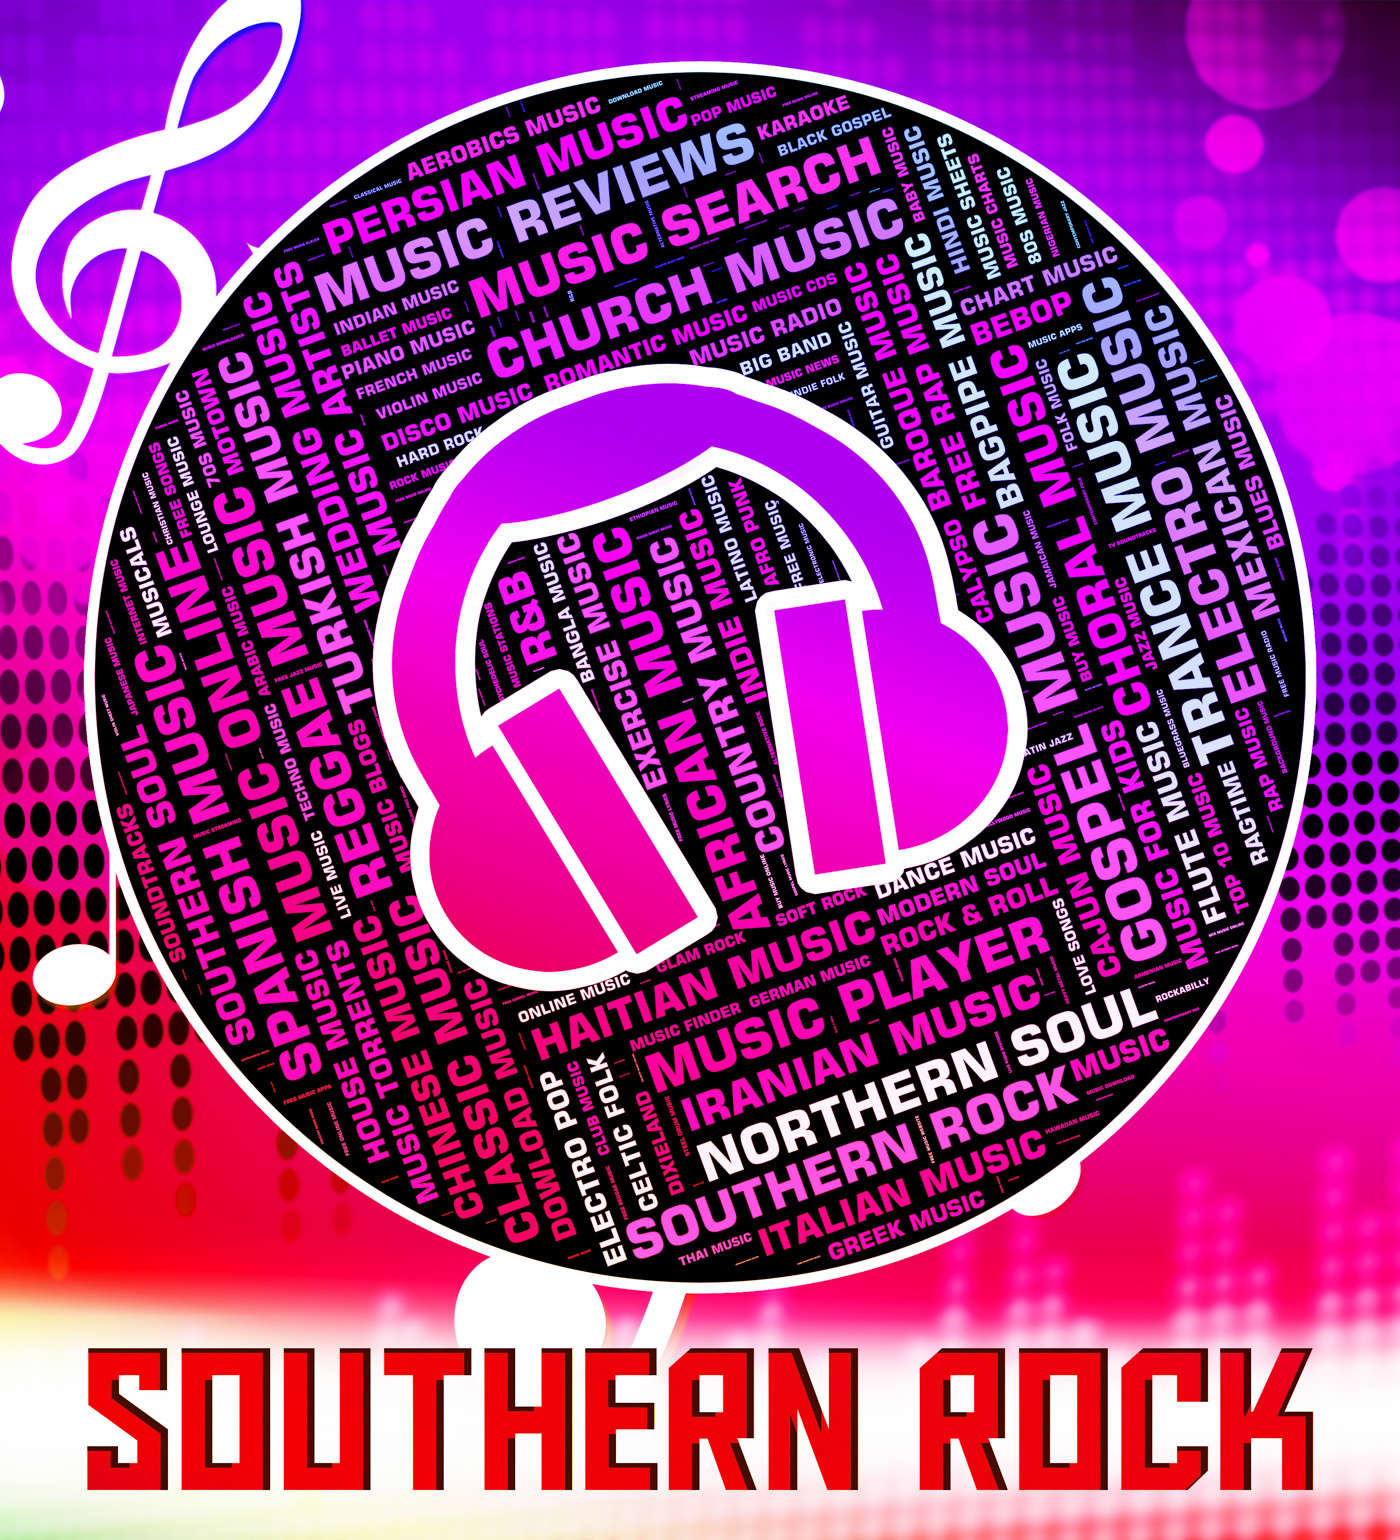 Southern rock shows electric guitar and harmony photo